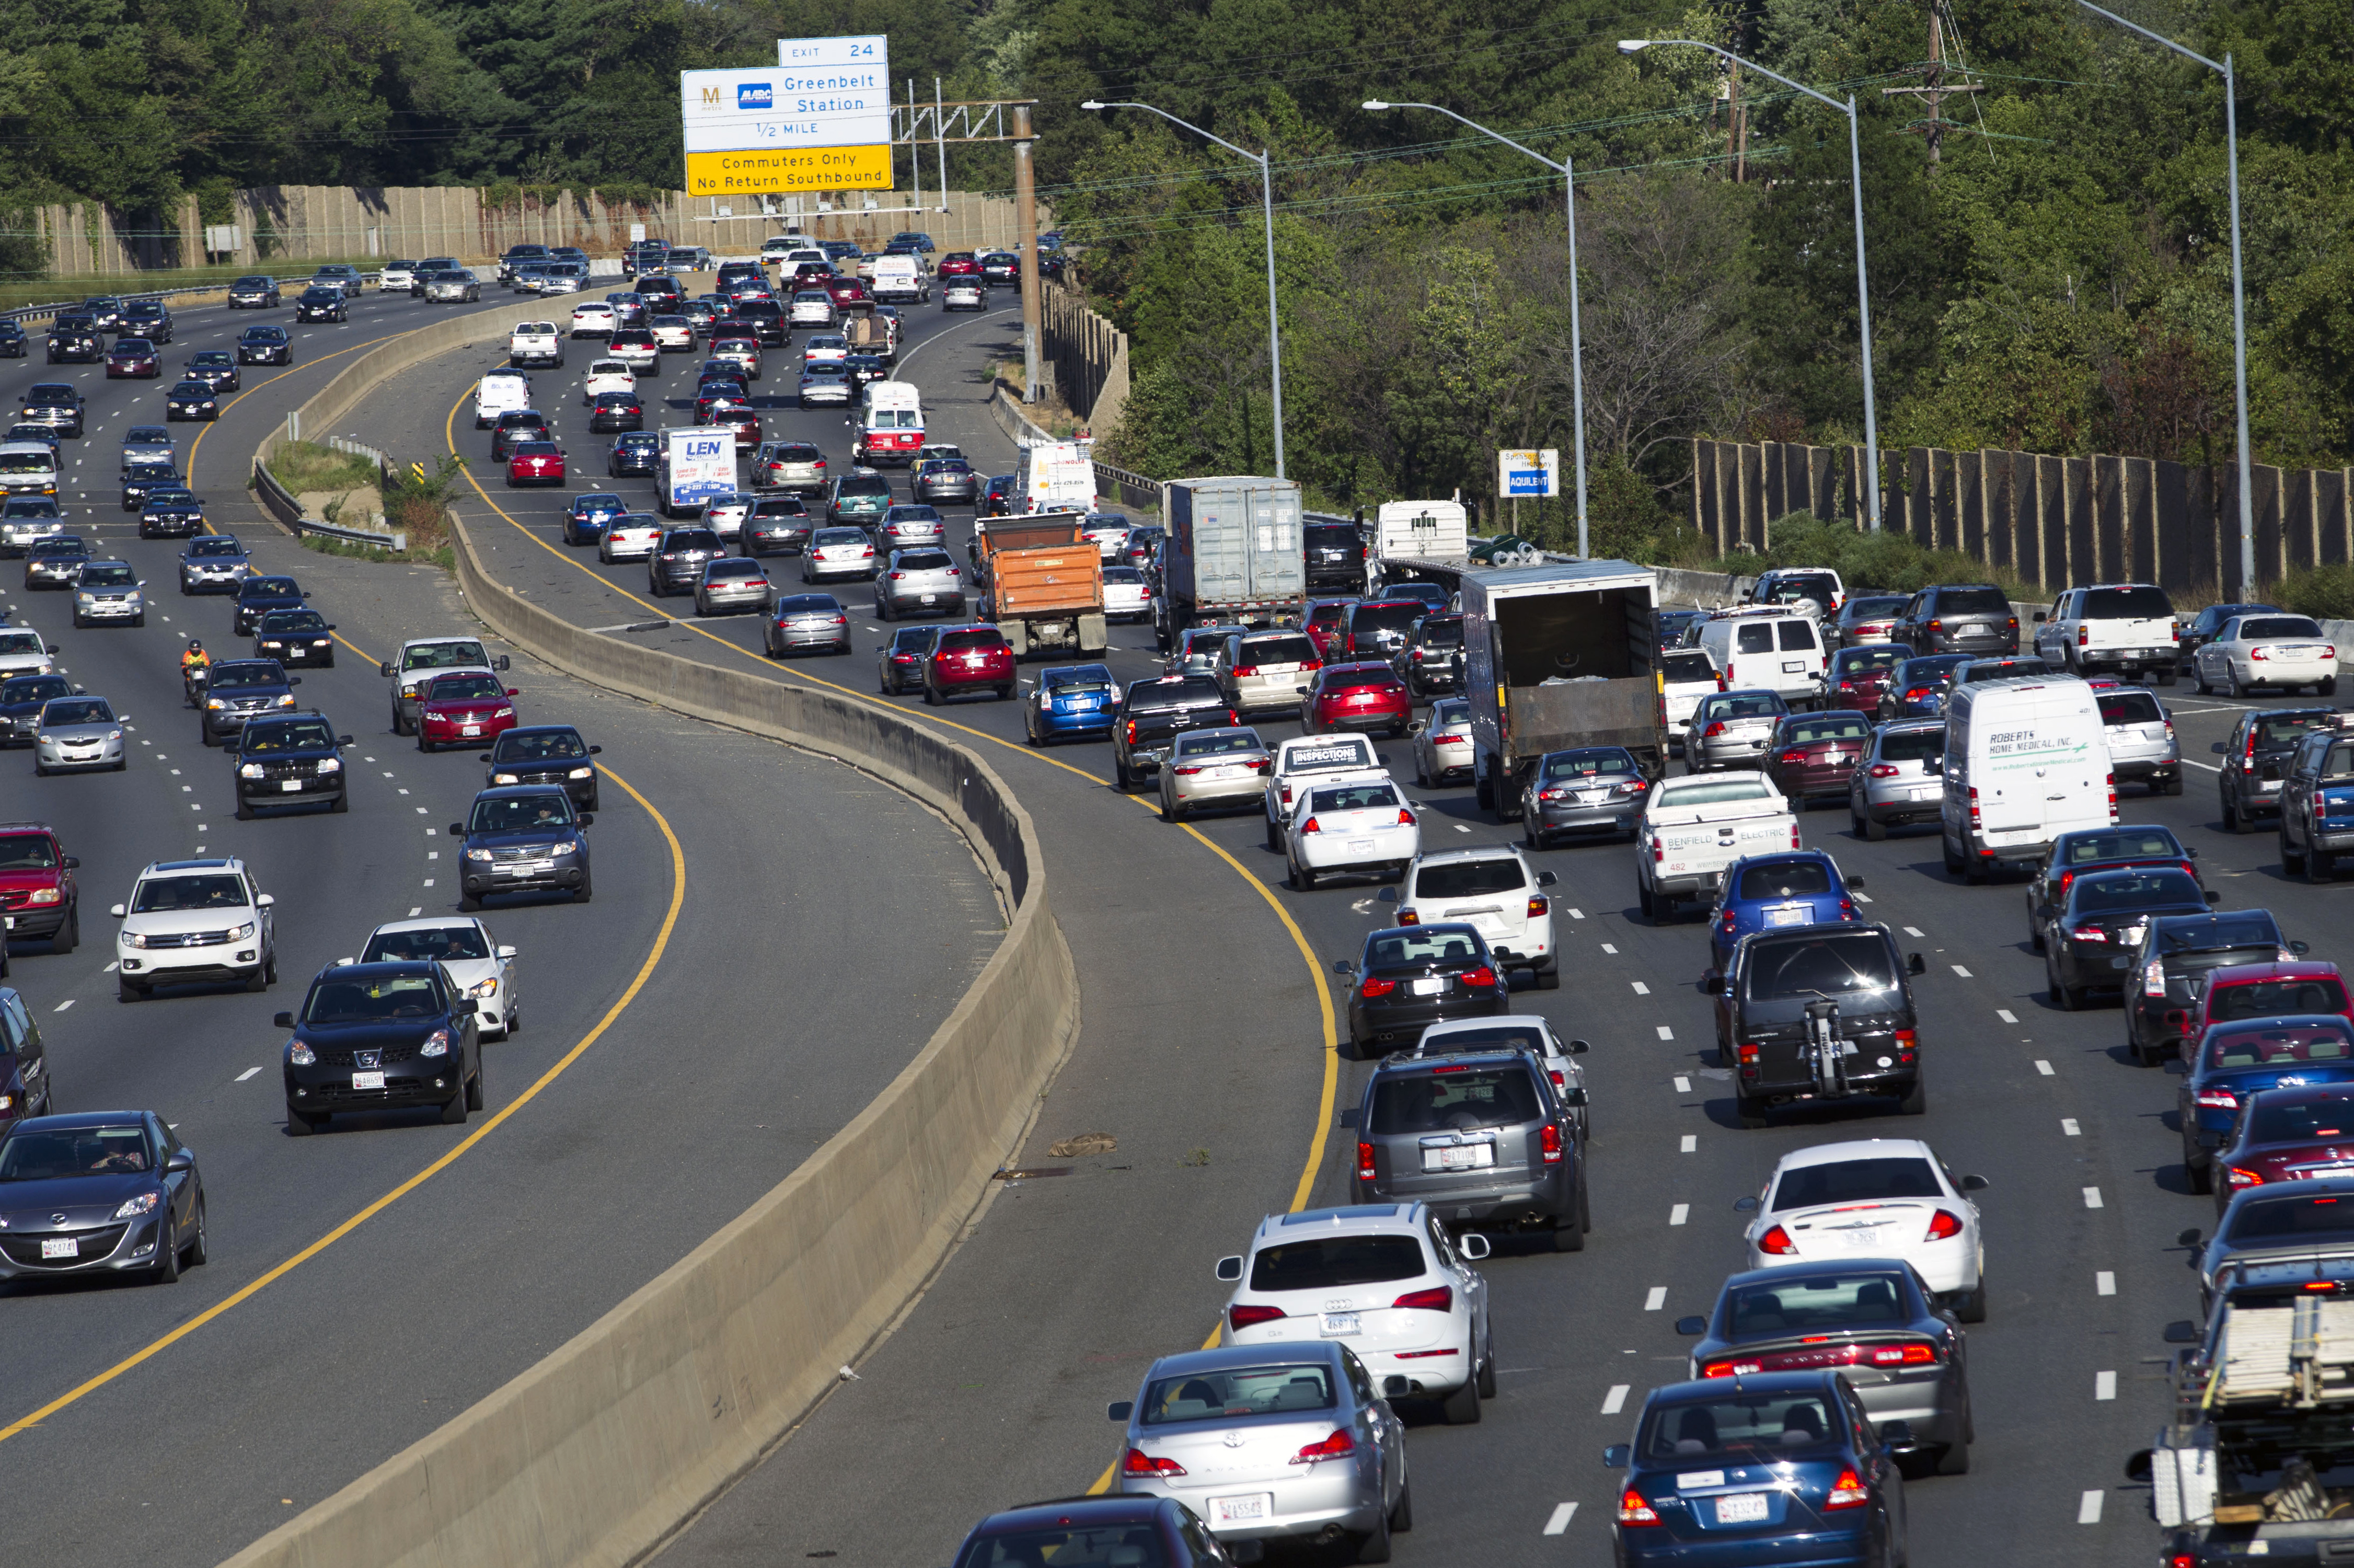 D.C. tops list of nation's worst traffic gridlock